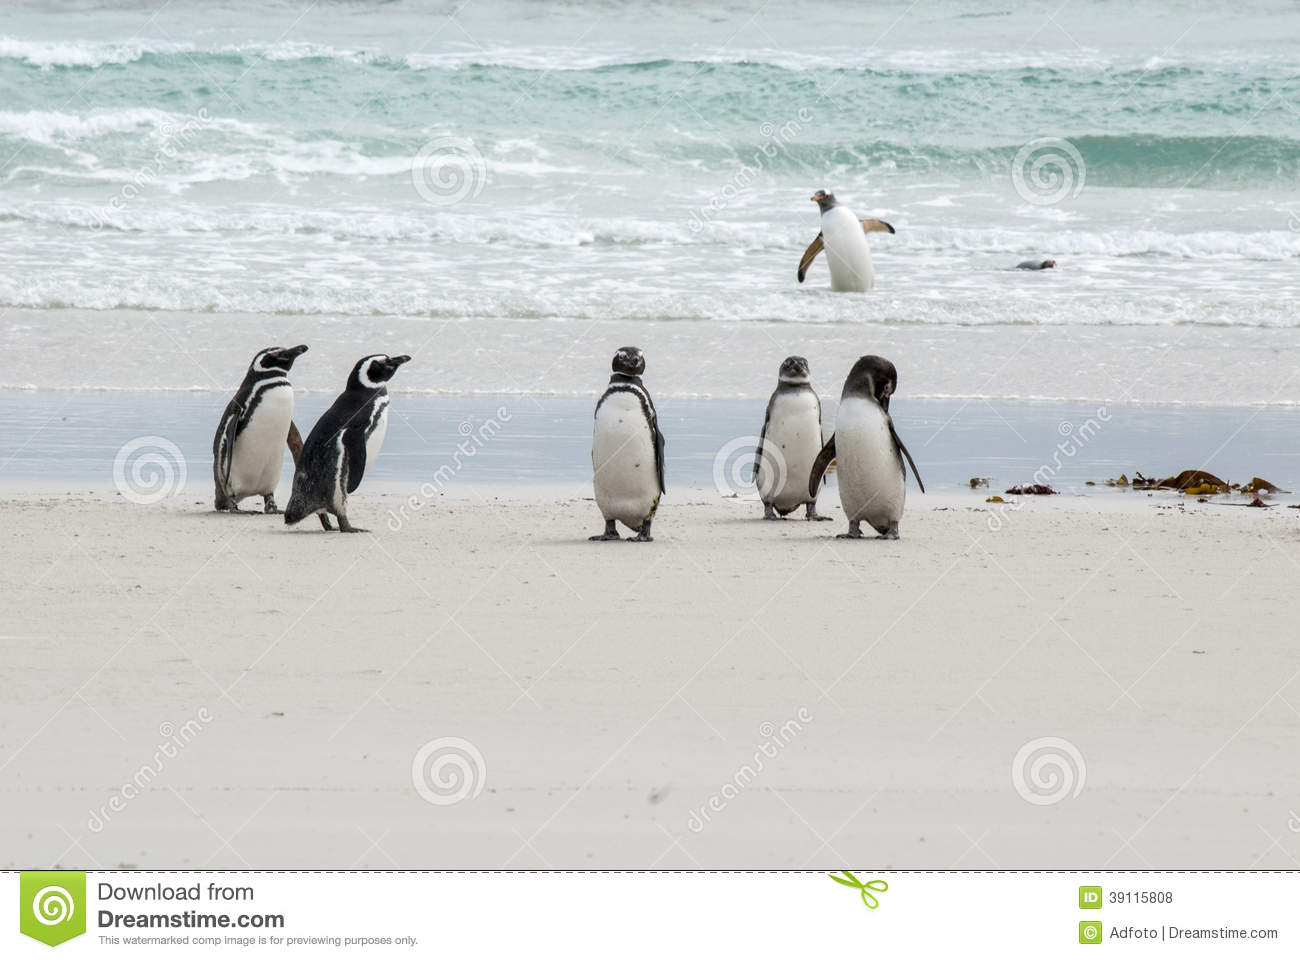 Falkland Islands - Pinguïnen